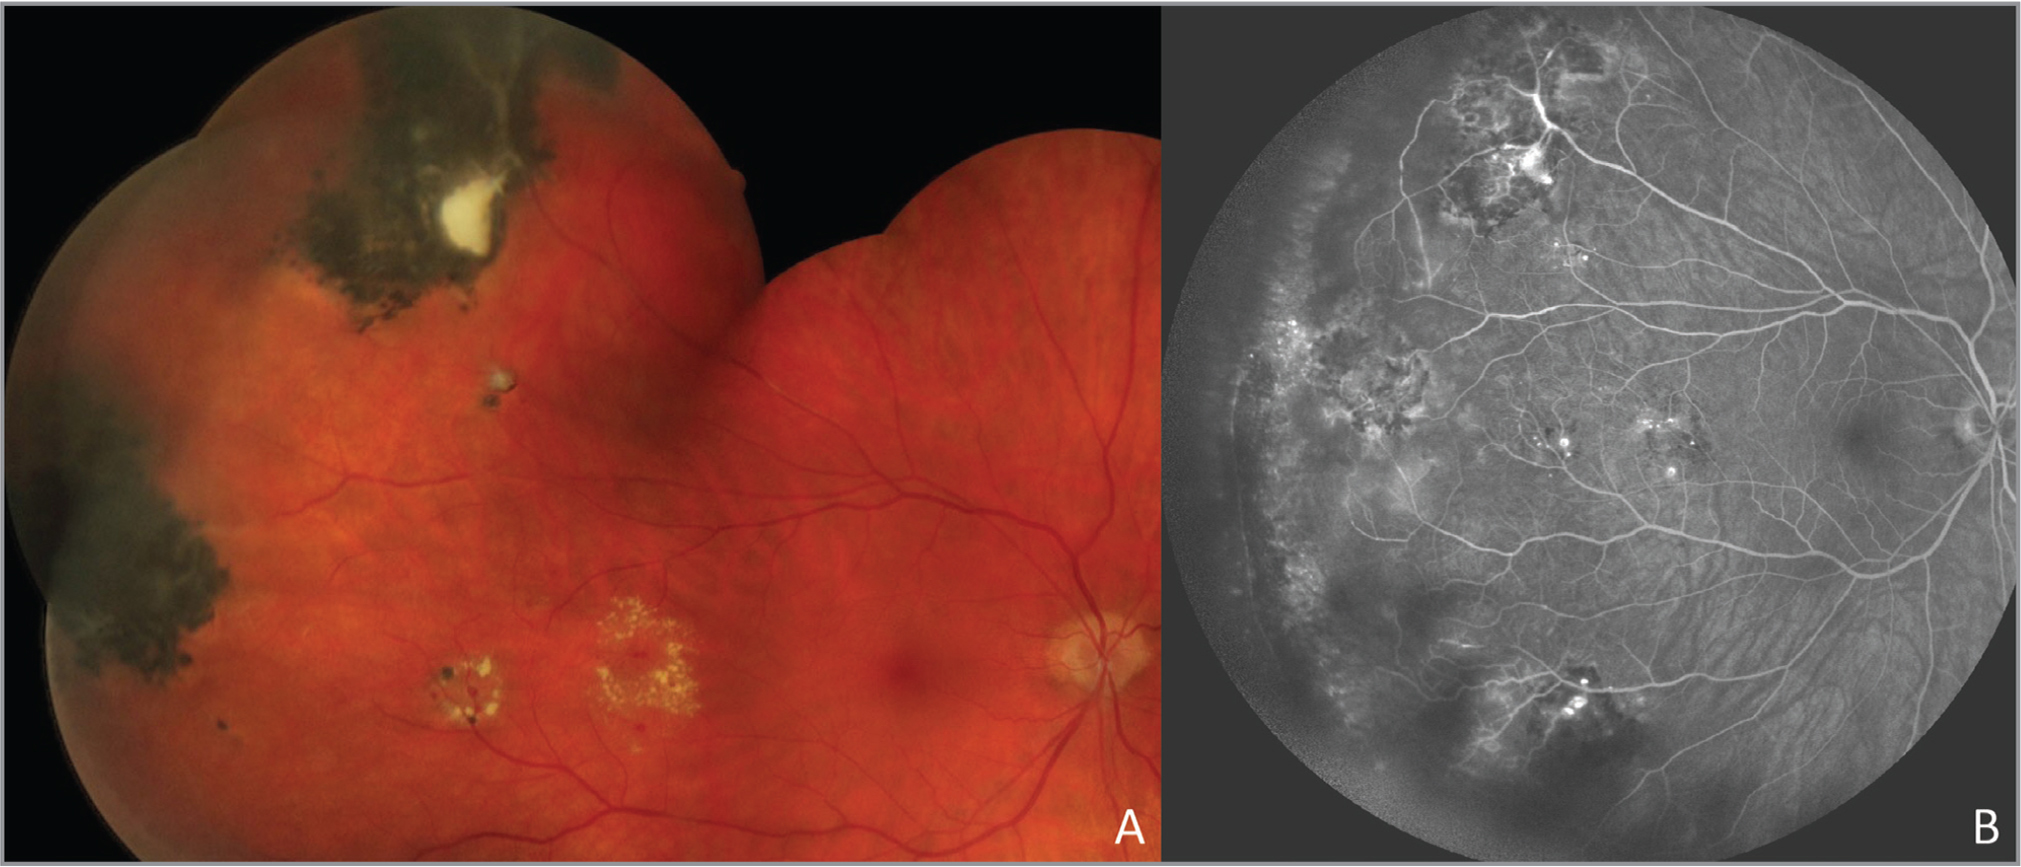 Fundus photograph of a cavernous hemangioma in a 42-year-old asymptomatic patient. Note the cluster of grape-like, thin-walled sacular angiomatous lesions (A) with the classic leakage on fluorescein angiography (B).